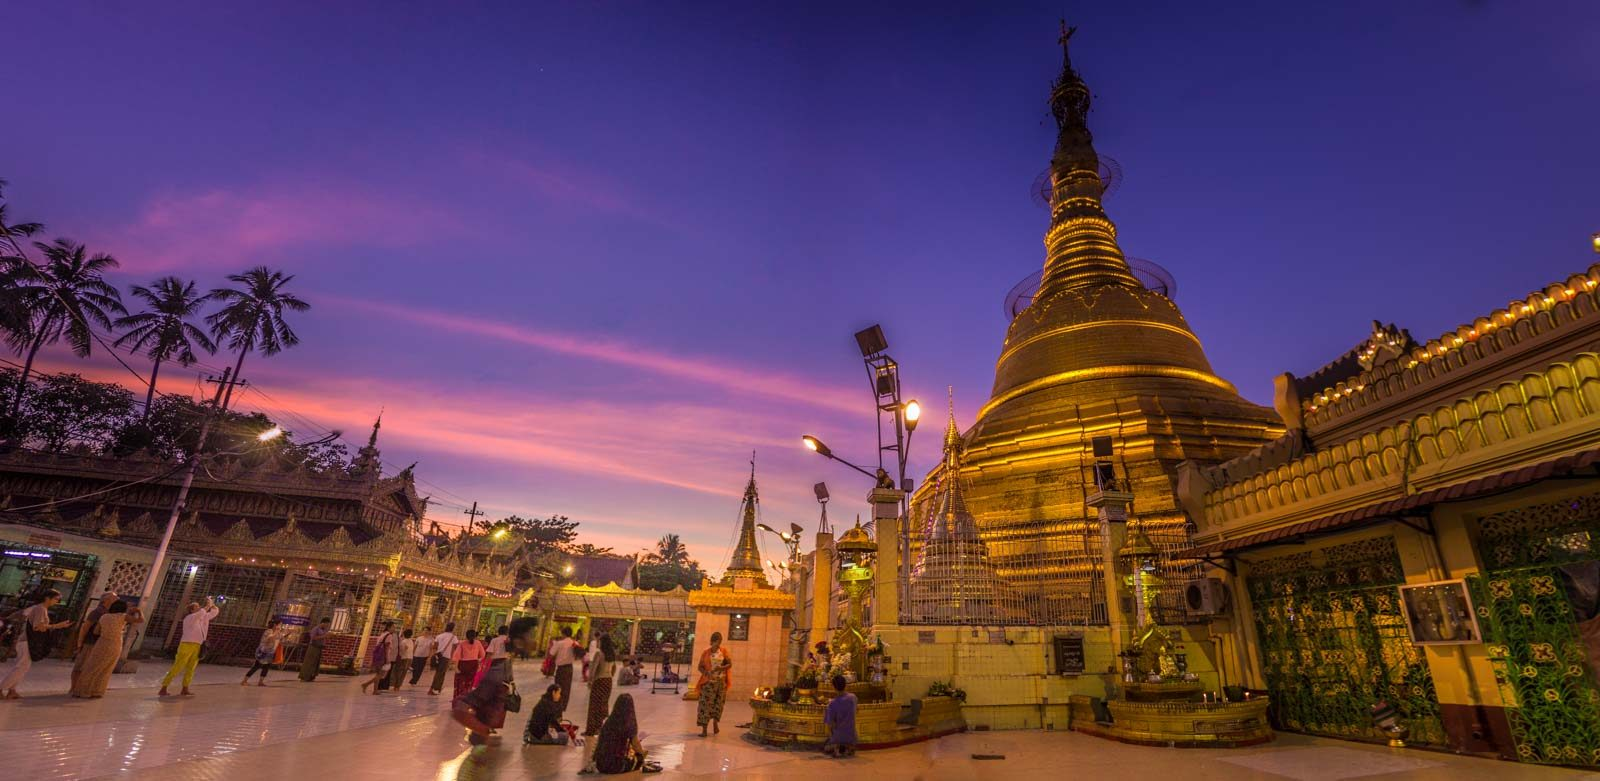 Yangon - Bago - Thanlyin 4 days